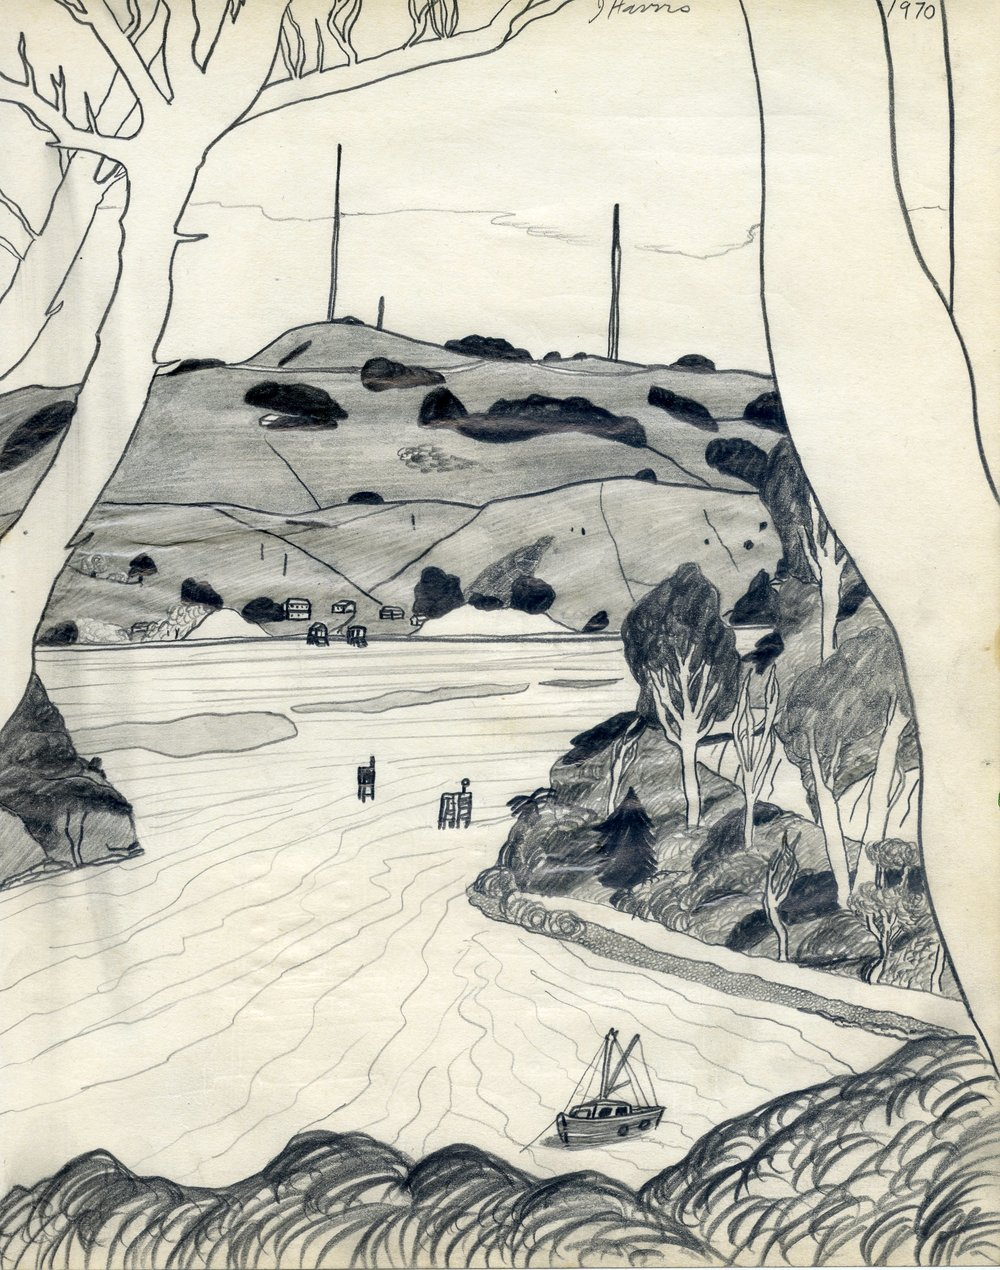 Jeffrey Harris  Port Chalmers , 1970 Pencil on paper 255 x 530 mm [Private collection]  ______